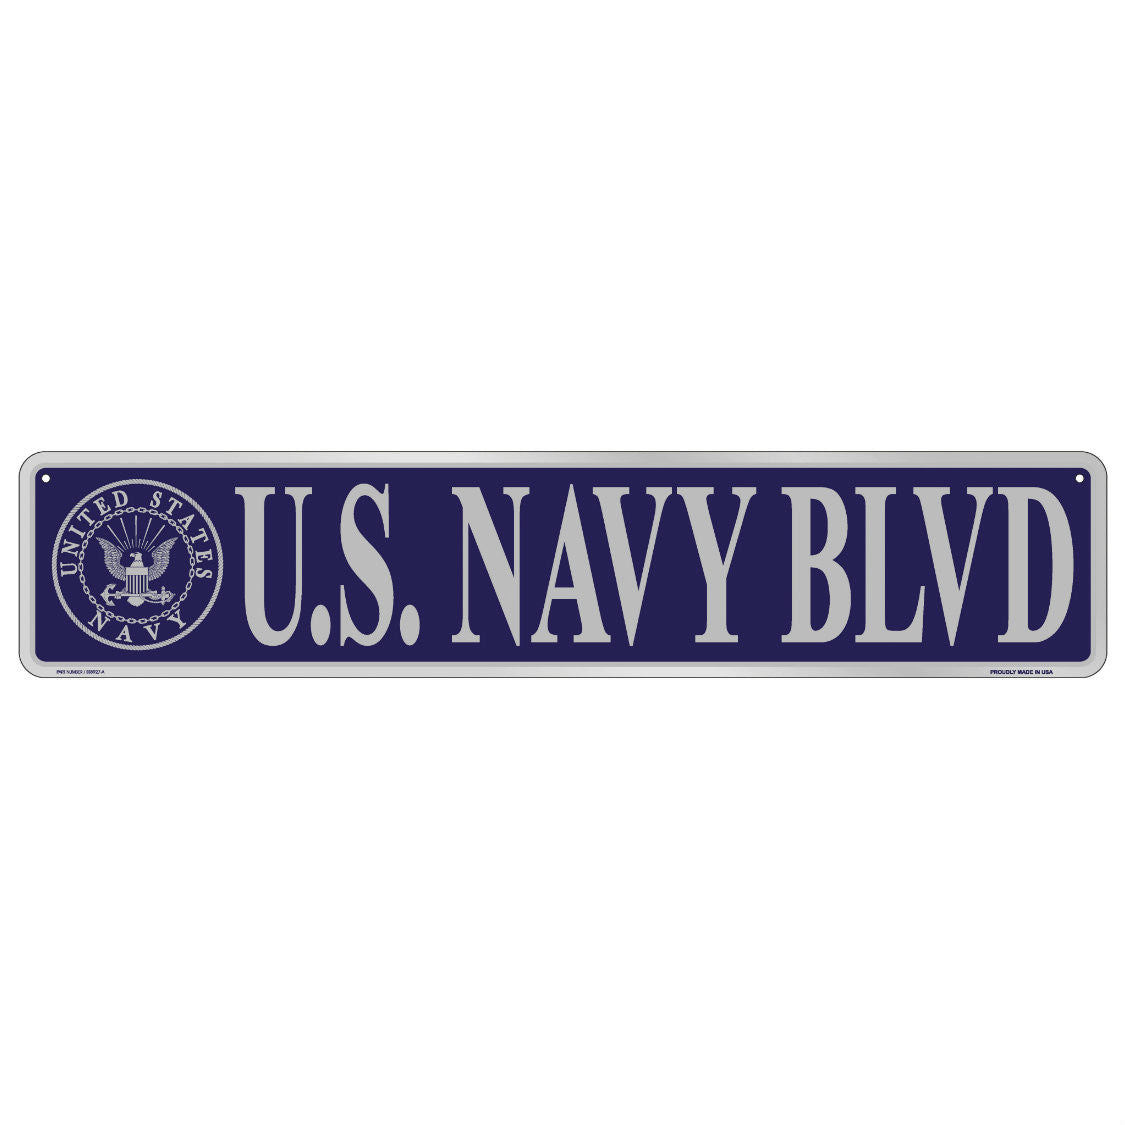 Navy Blvd Metal Street Sign - Indy Army Navy